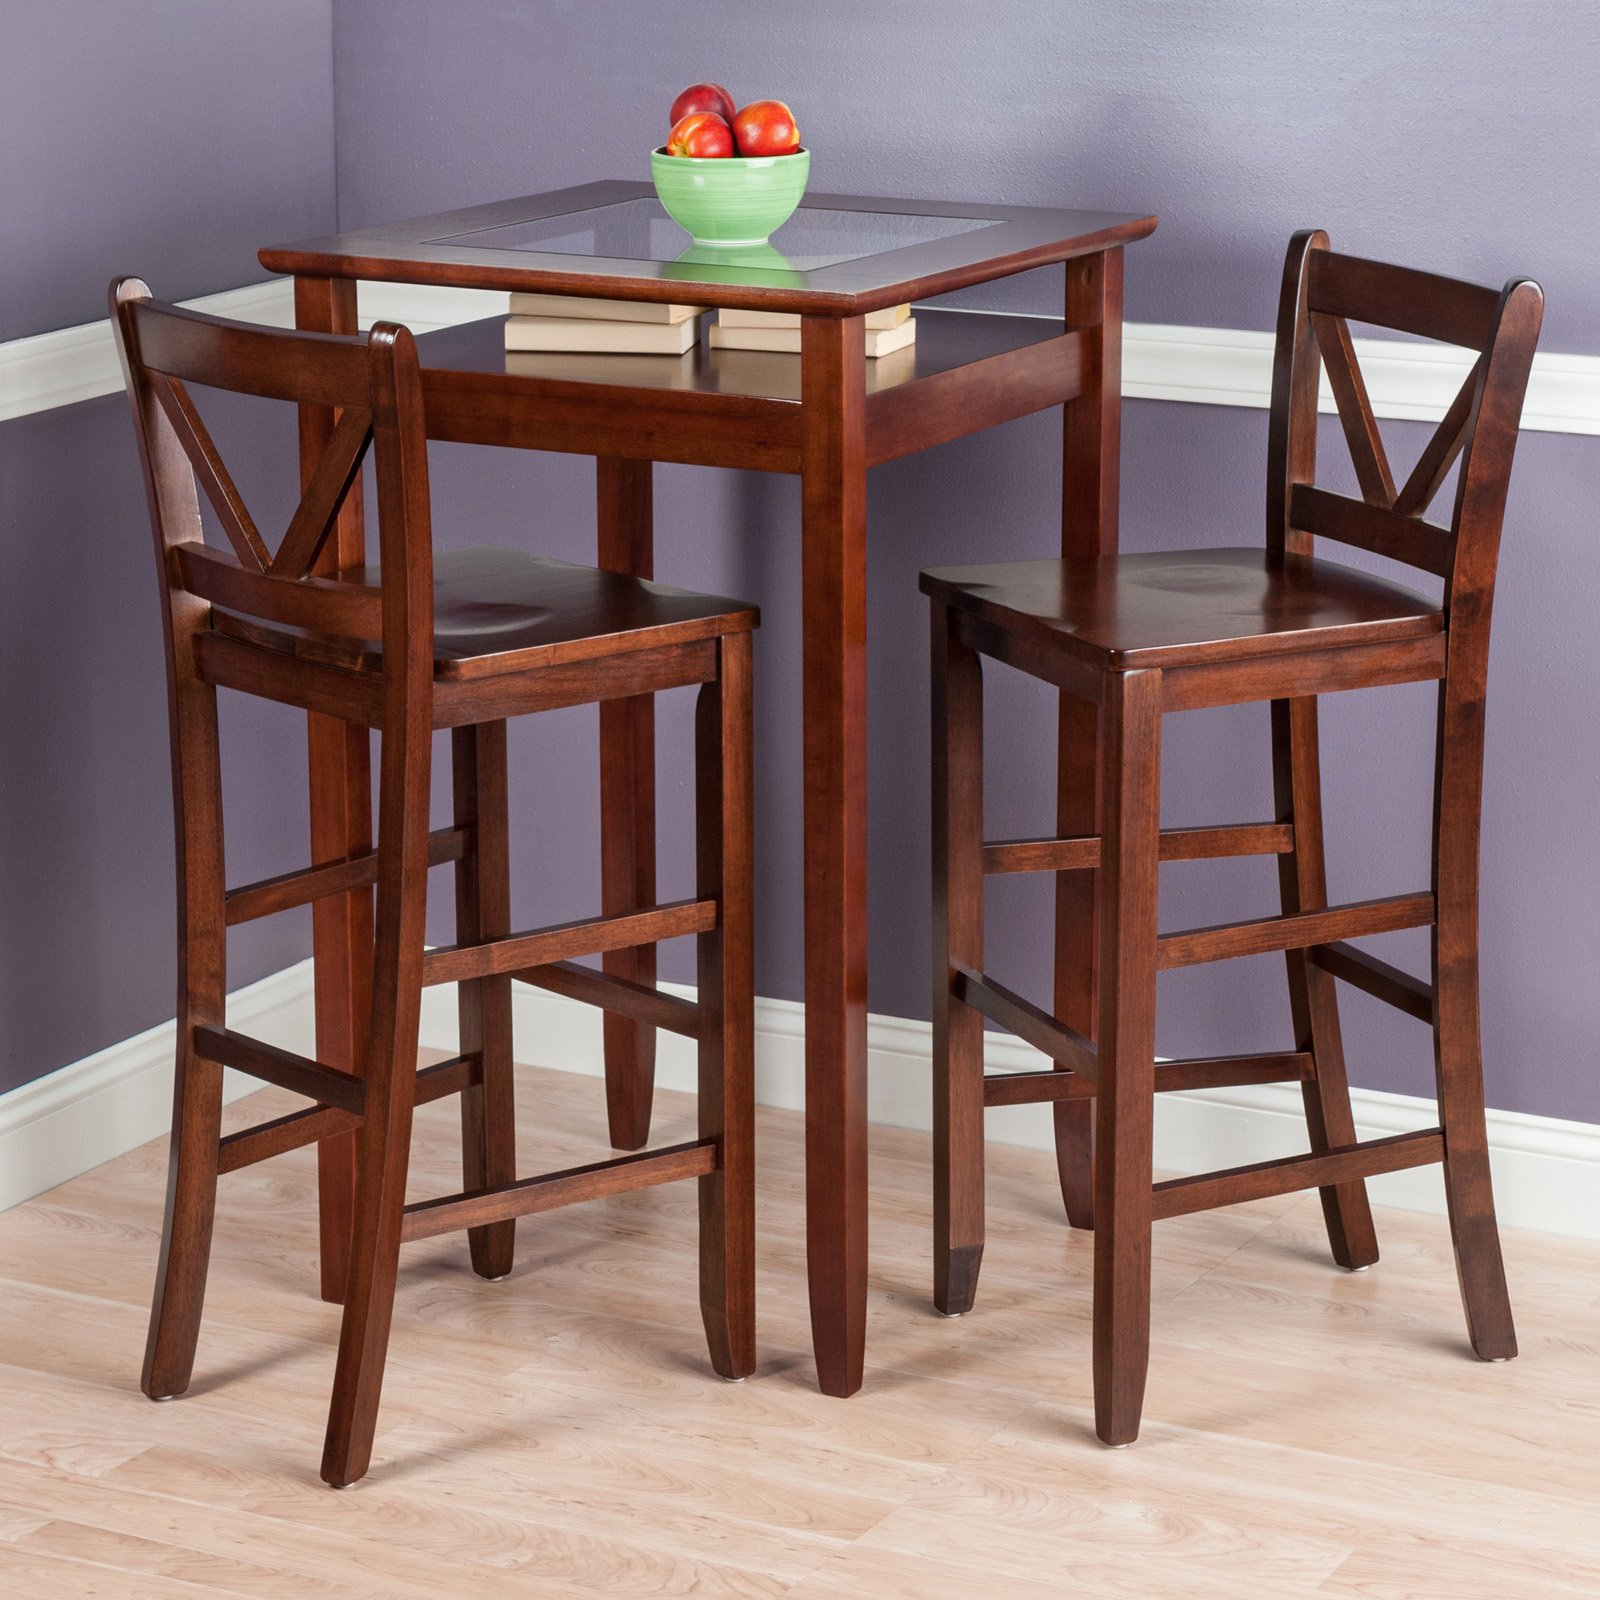 Halo 3pc Pub Table Set with 2 V-Back Stools